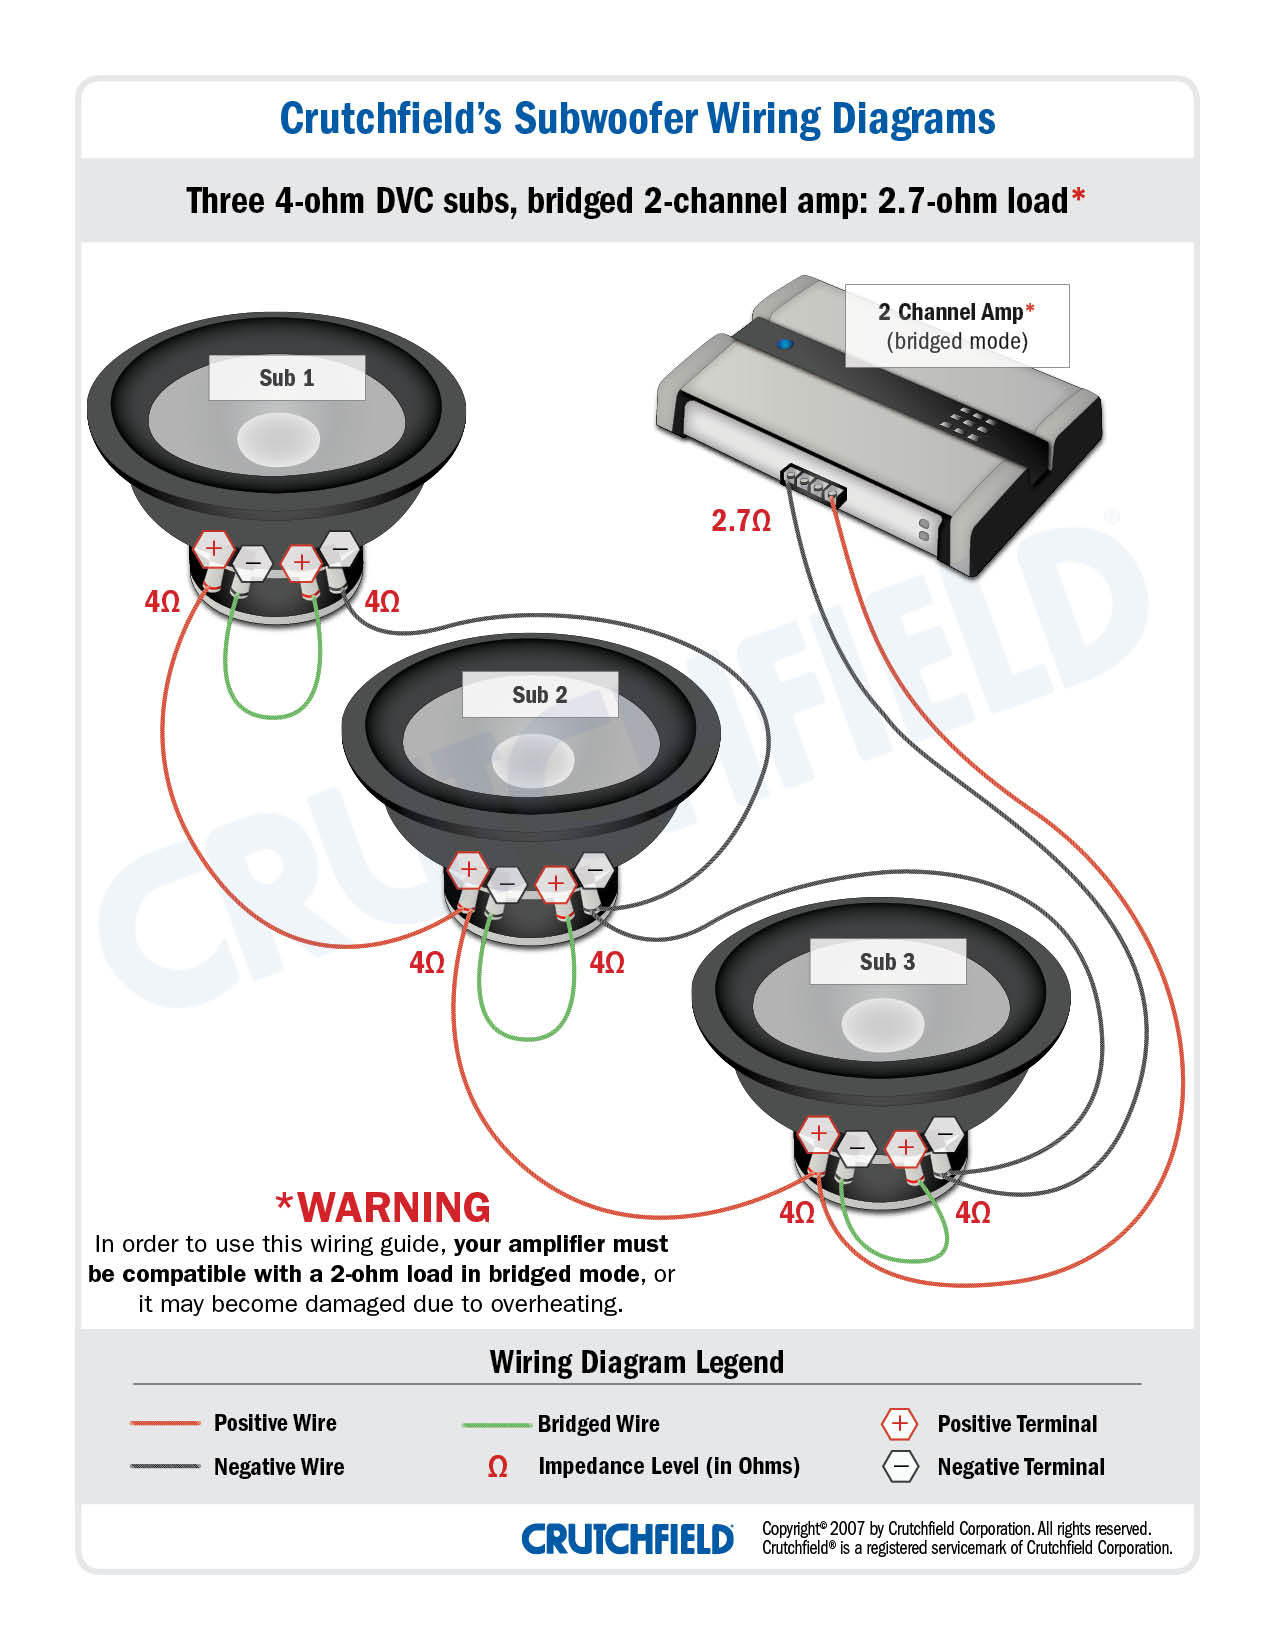 subwoofer wiring diagrams 3 dvc 4 ohm 2ch low imp